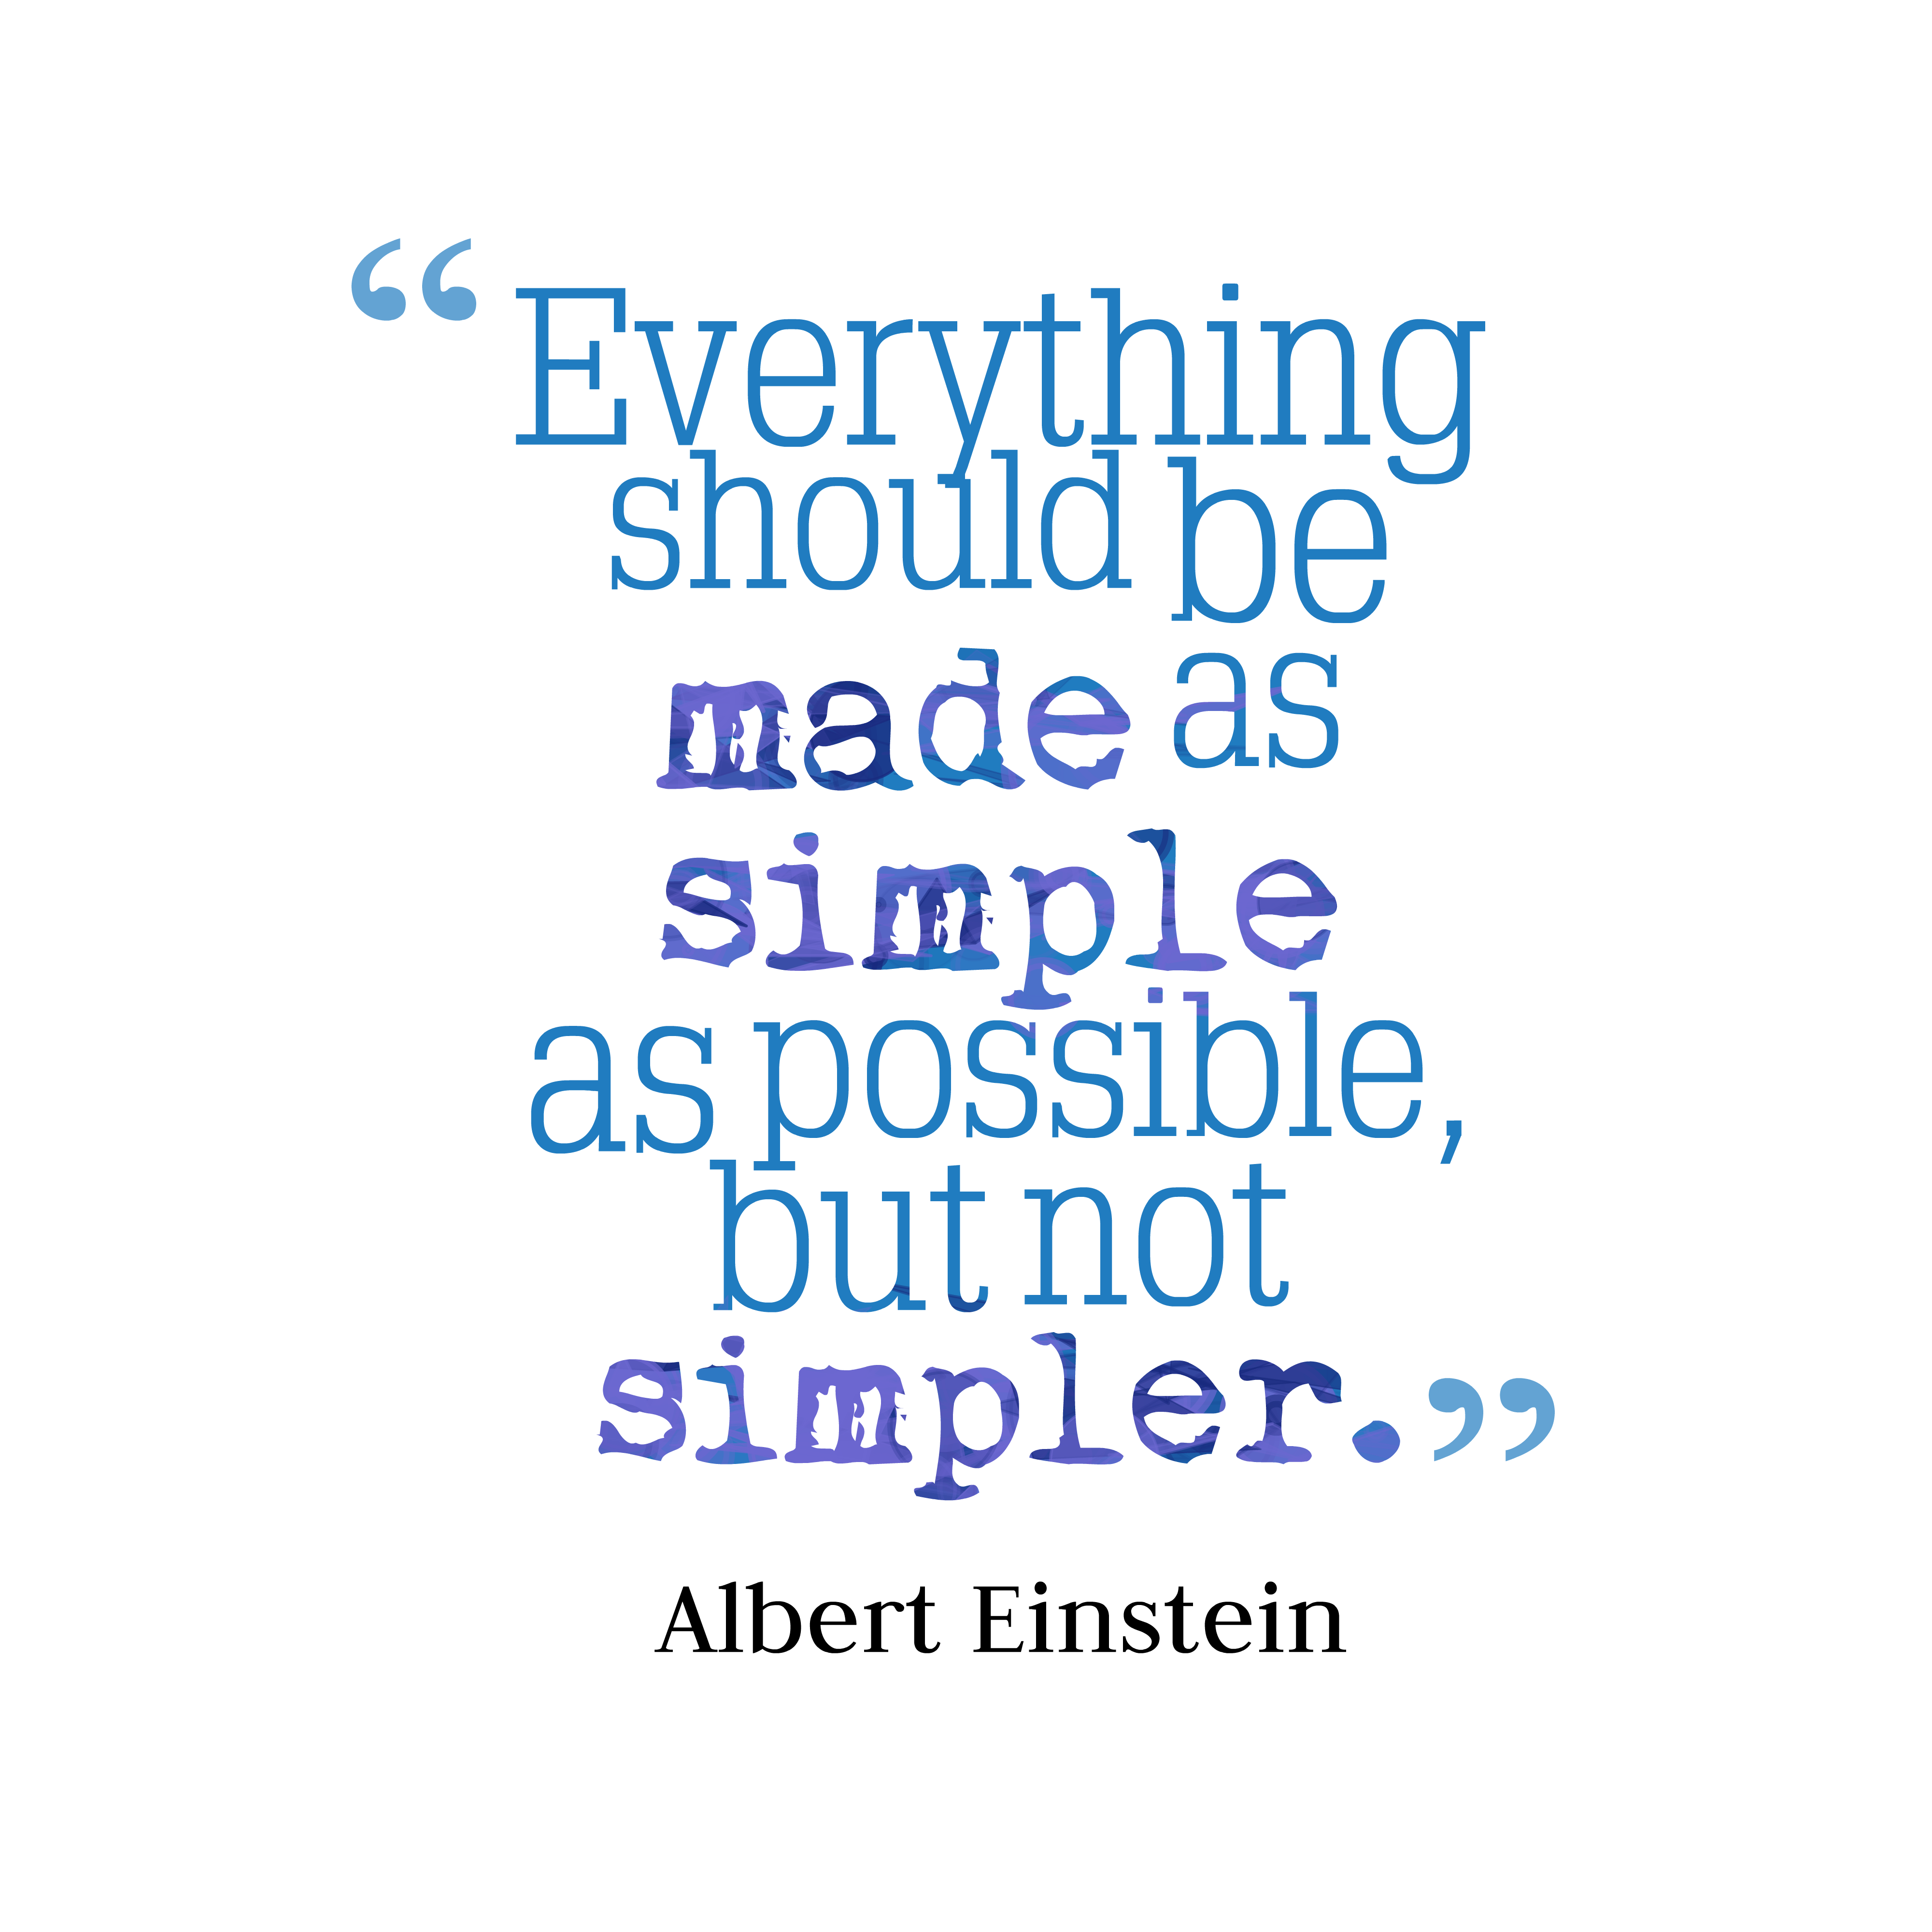 Quotes image of Everything should be made as simple as possible, but not simpler.